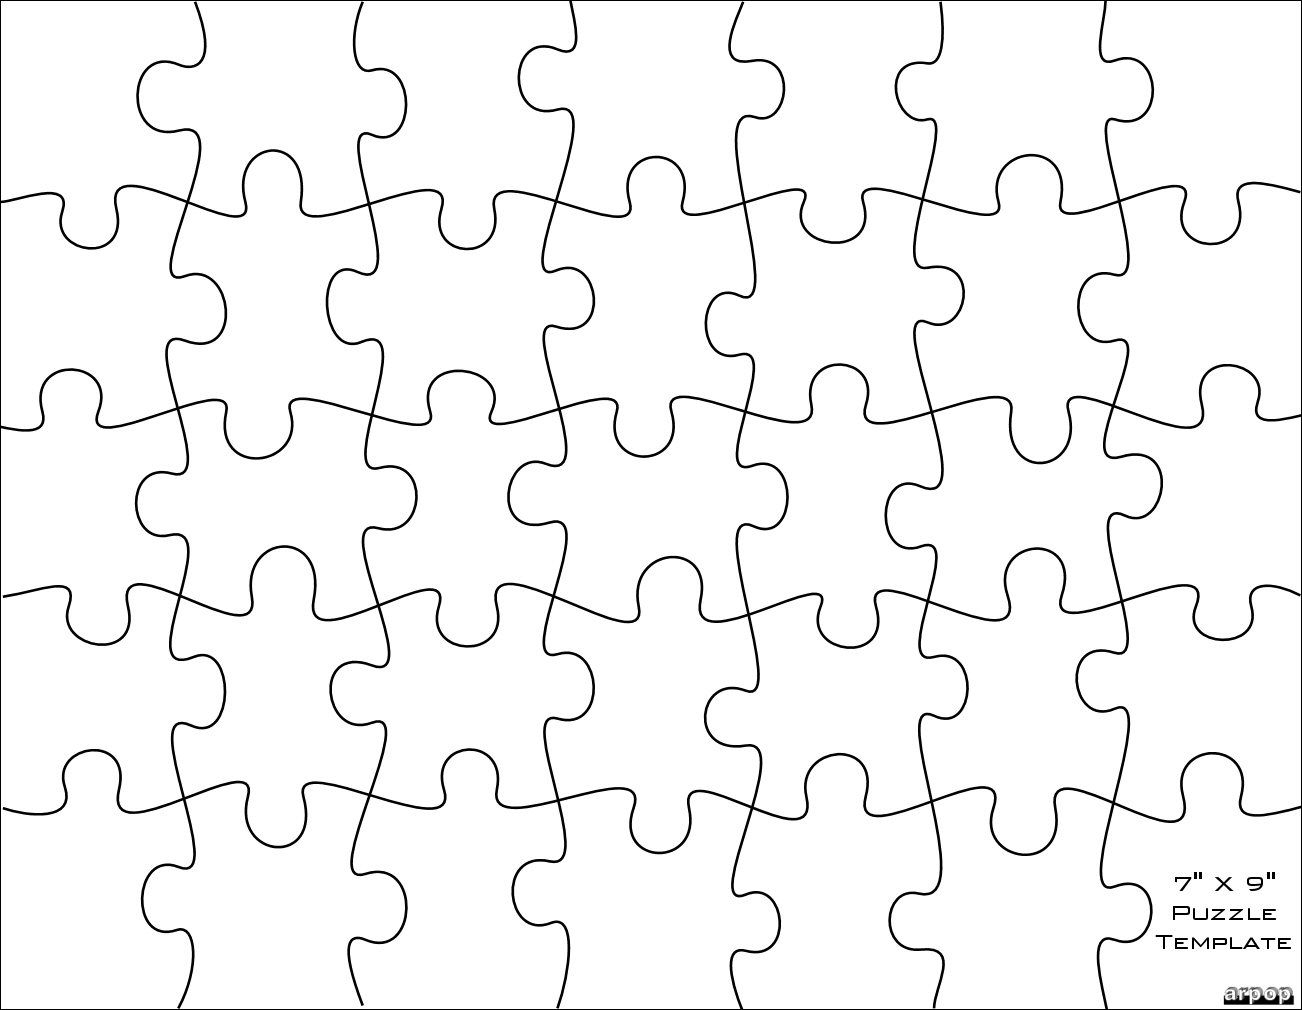 Free Scroll Saw Patternsarpop: Jigsaw Puzzle Templates | School - Printable Jigsaw Puzzles Maker